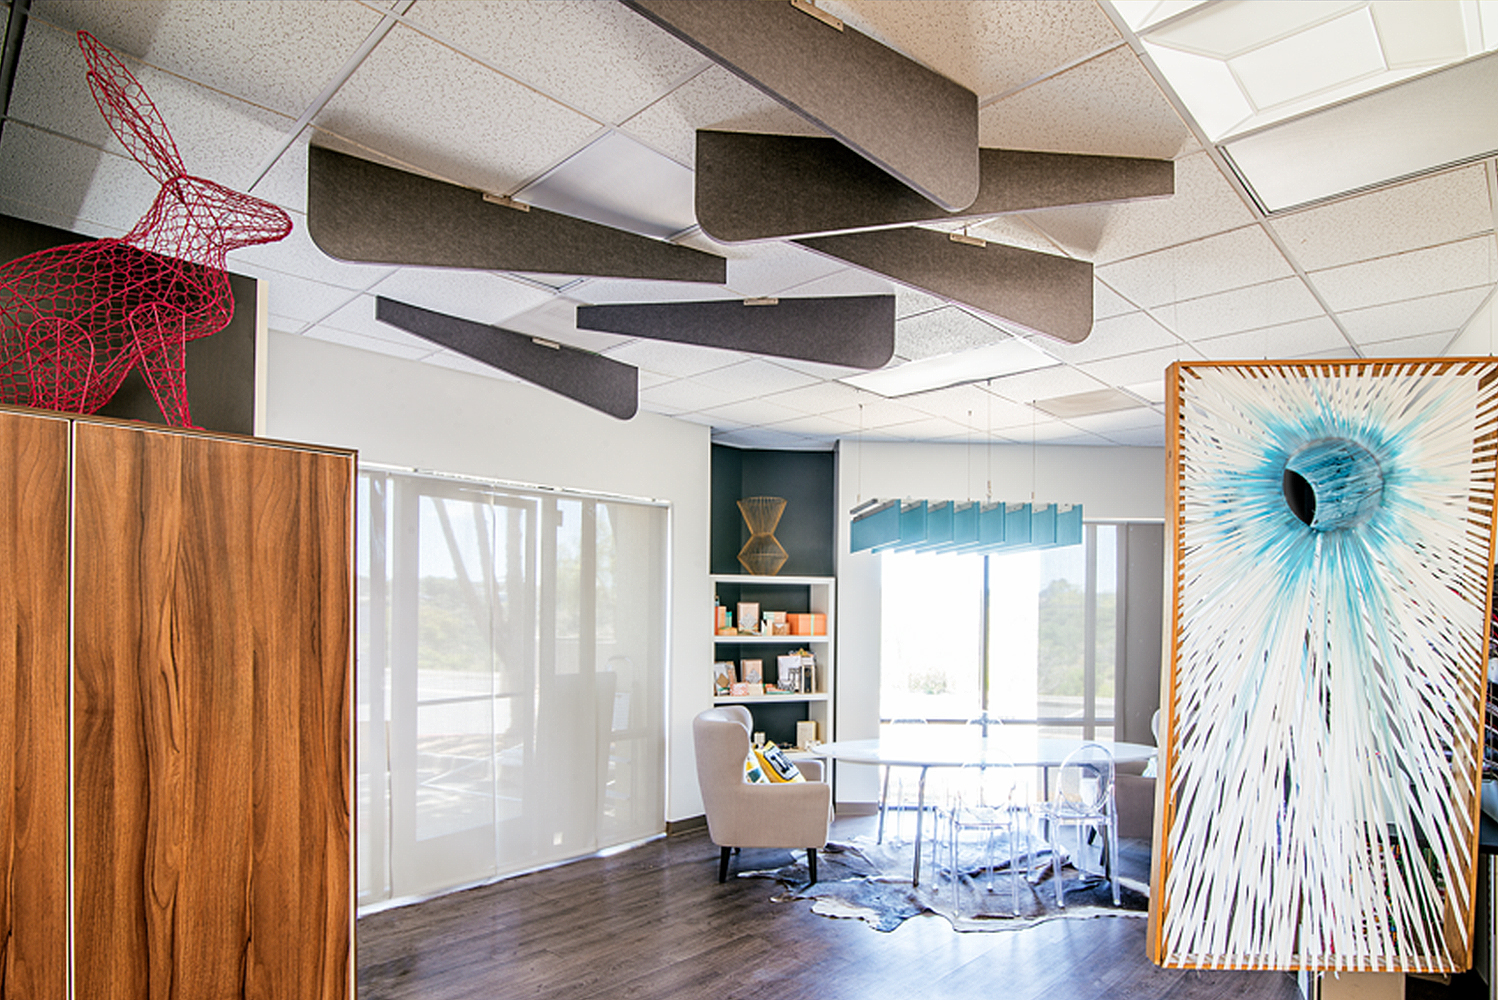 These blades install easily and break up the monotony of ceiling tiles by introducing creative outlines, vibrant colors and functional acoustics.